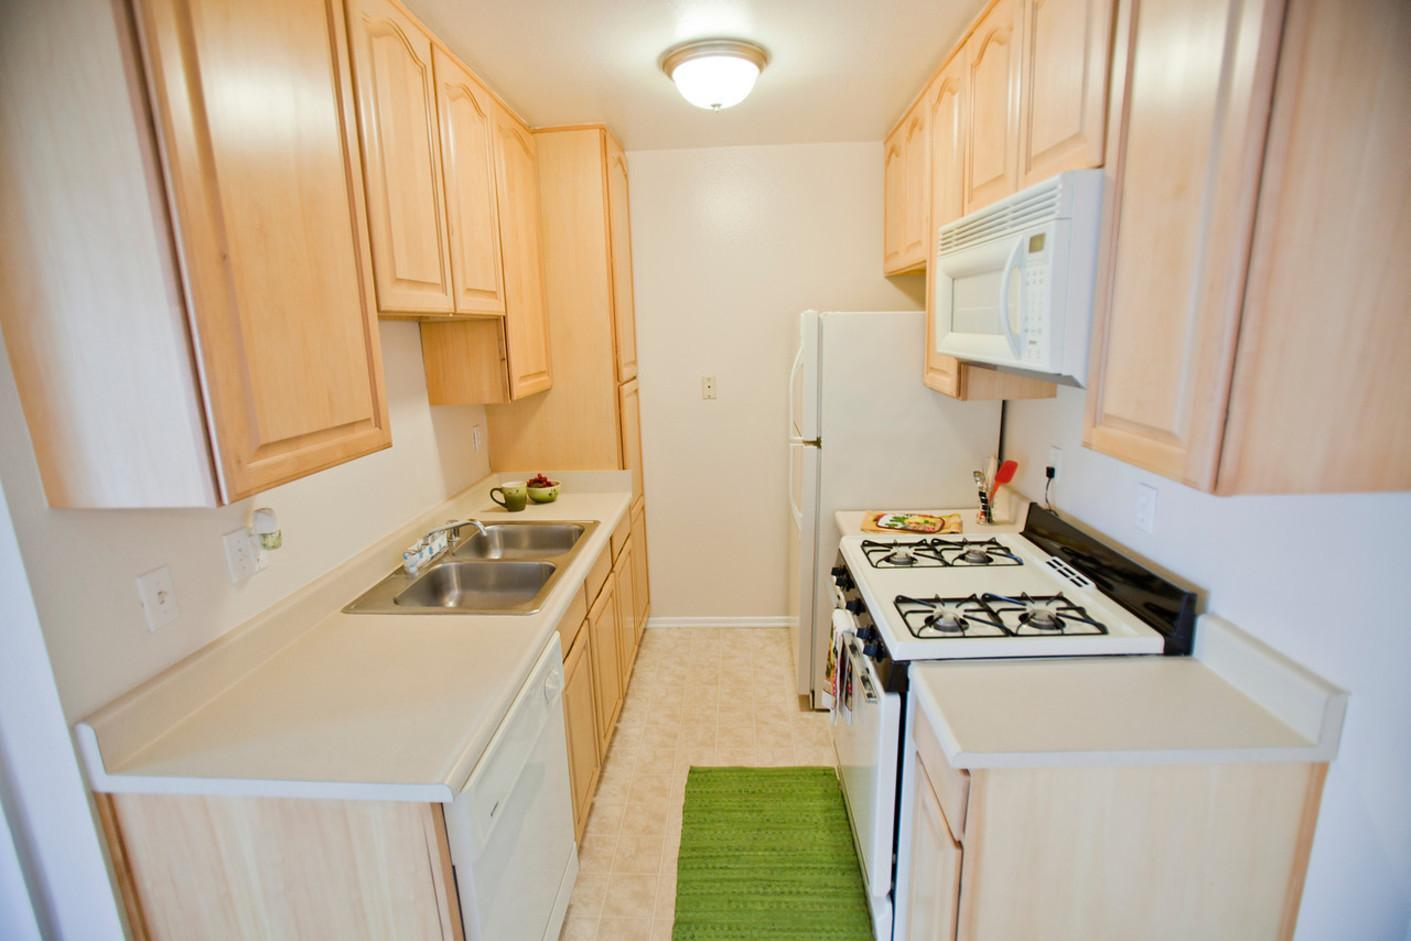 125 W Olive Ave #110, Monrovia, CA - $1,860 USD/ month